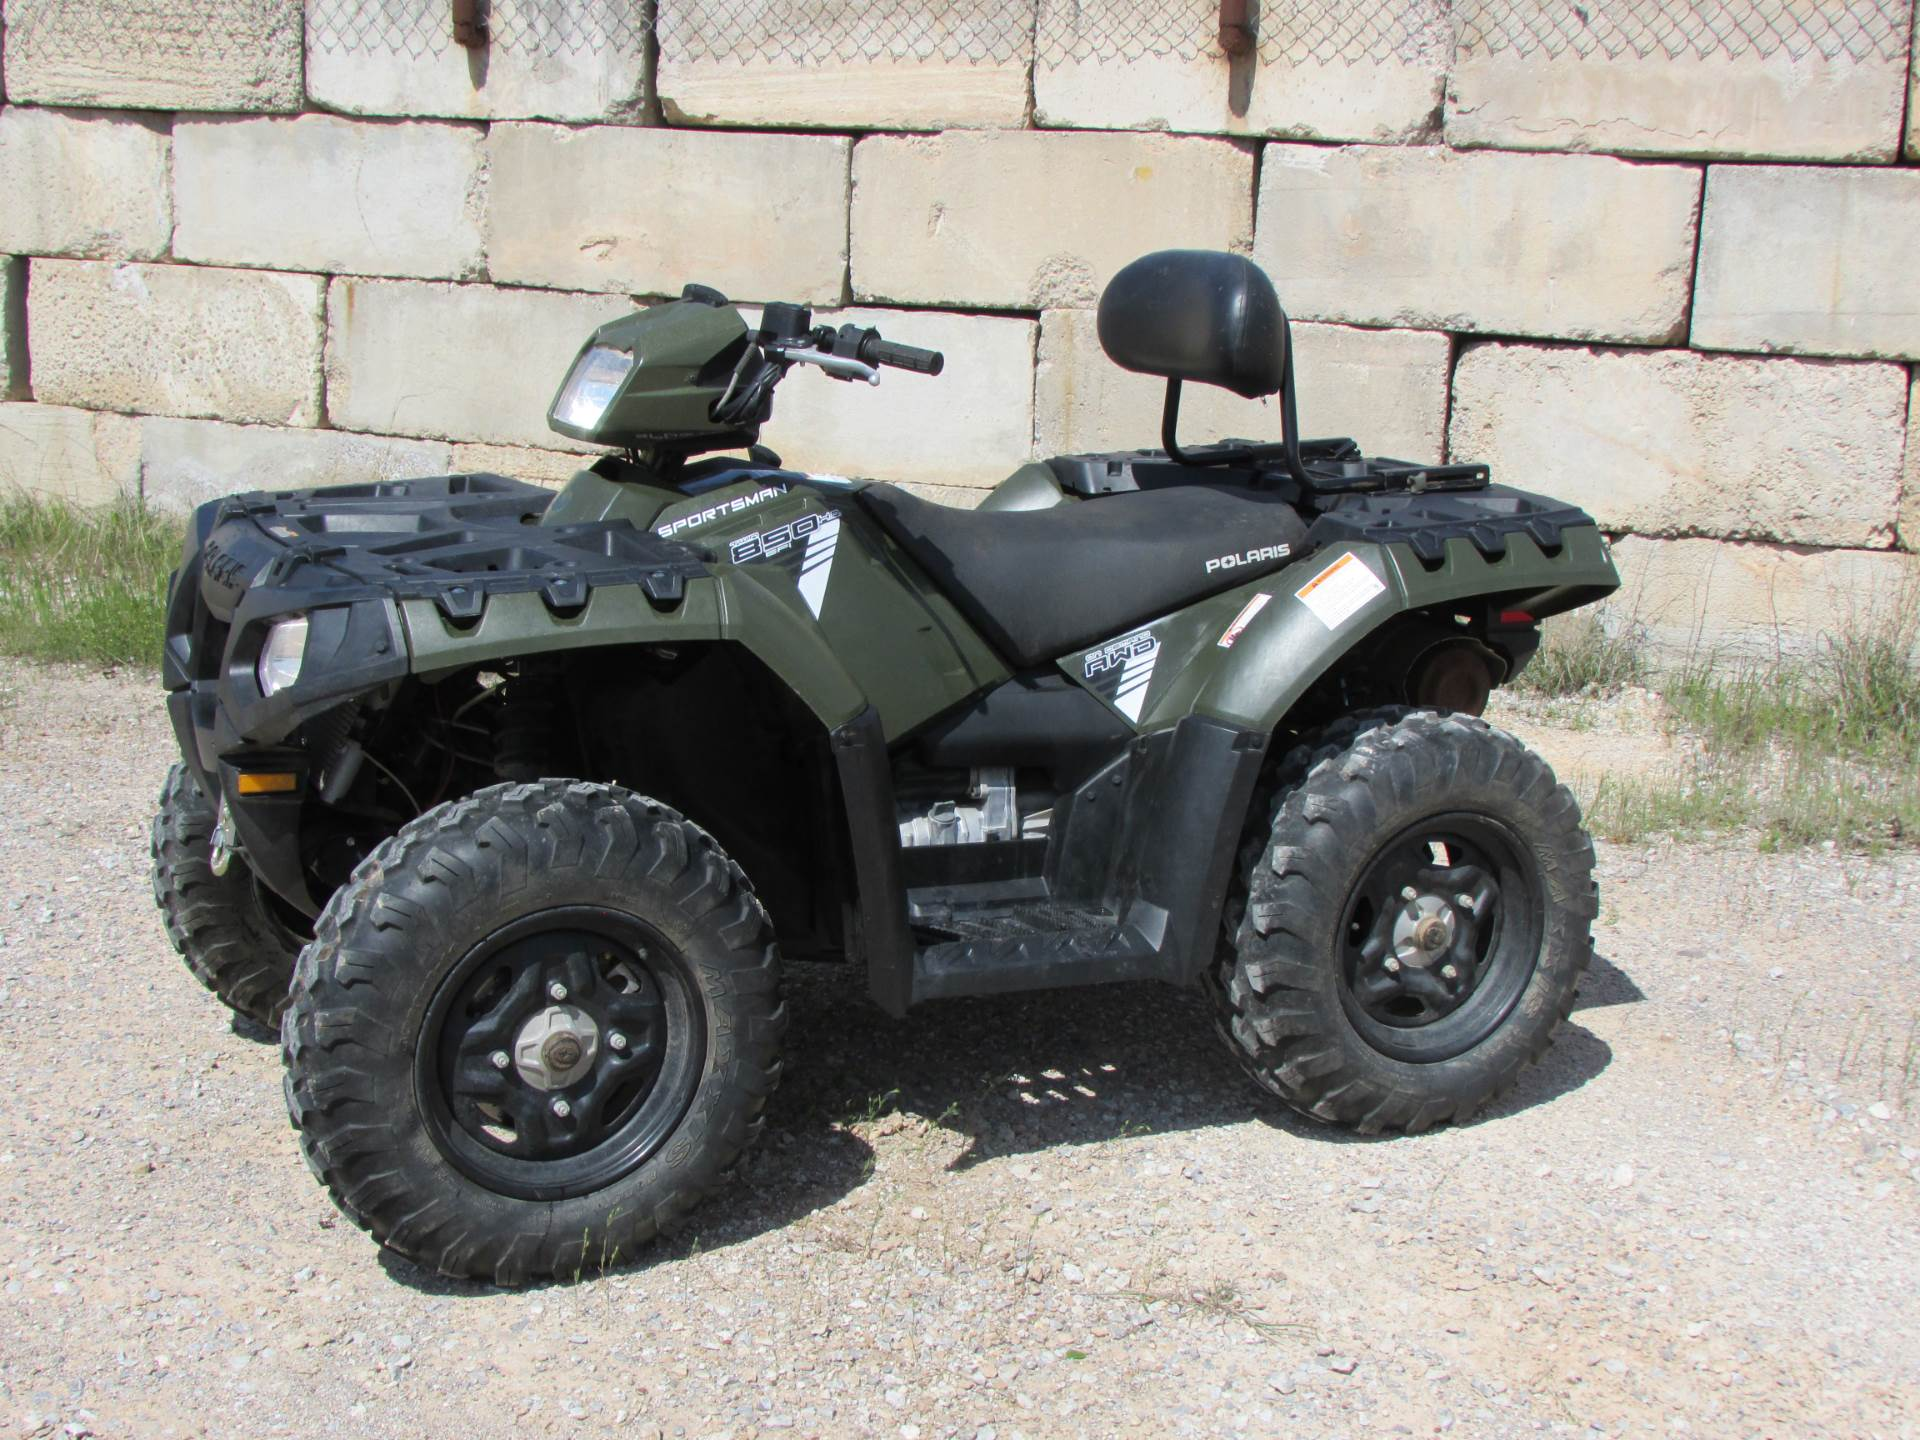 2015 Polaris Sportsman® 850 in Wichita Falls, Texas - Photo 3